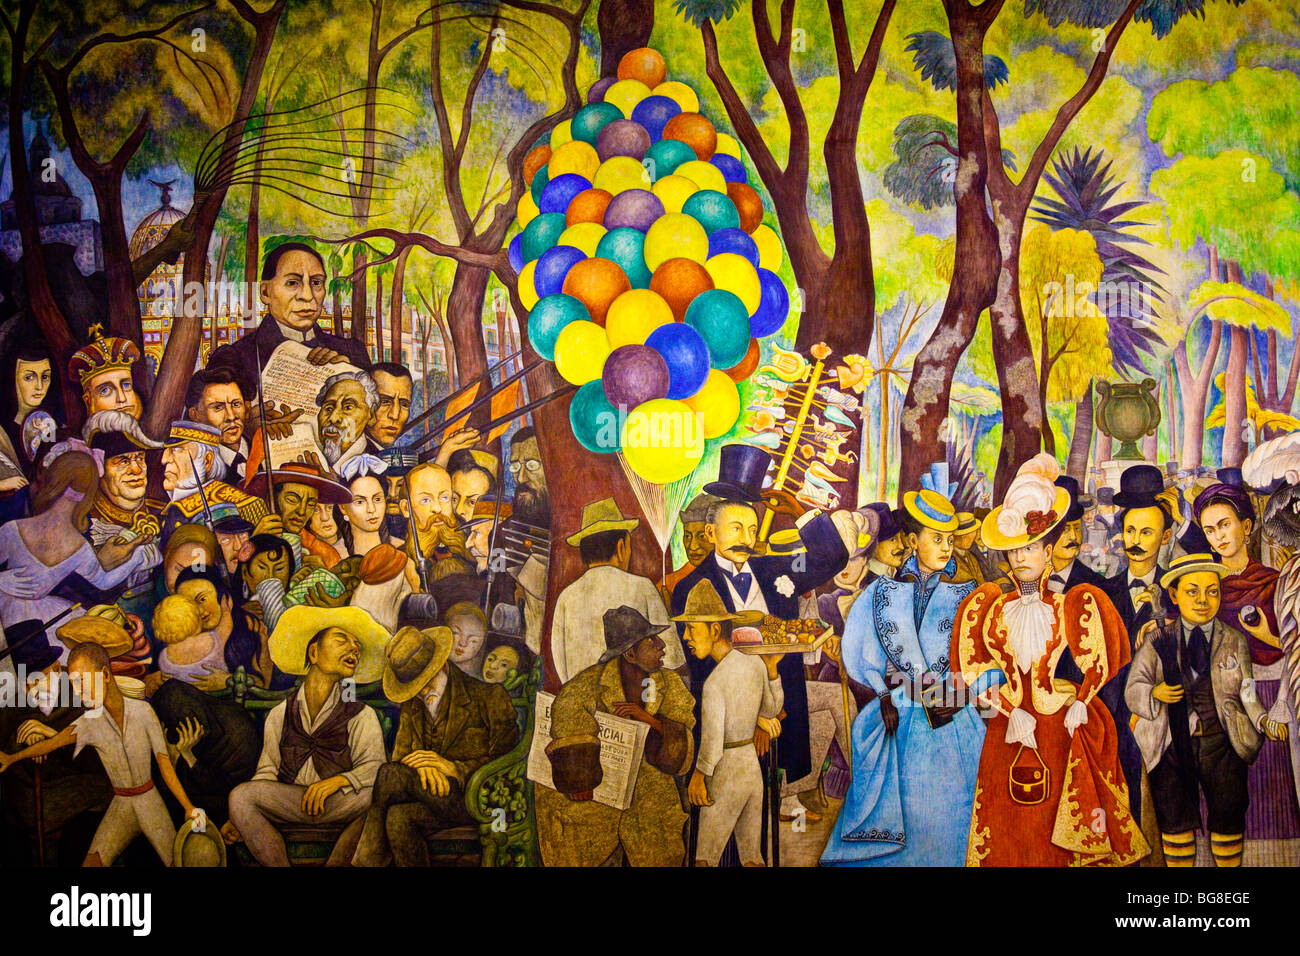 Dream Of A Sunday Afternoon In The Alameda Mural By Diego Rivera In